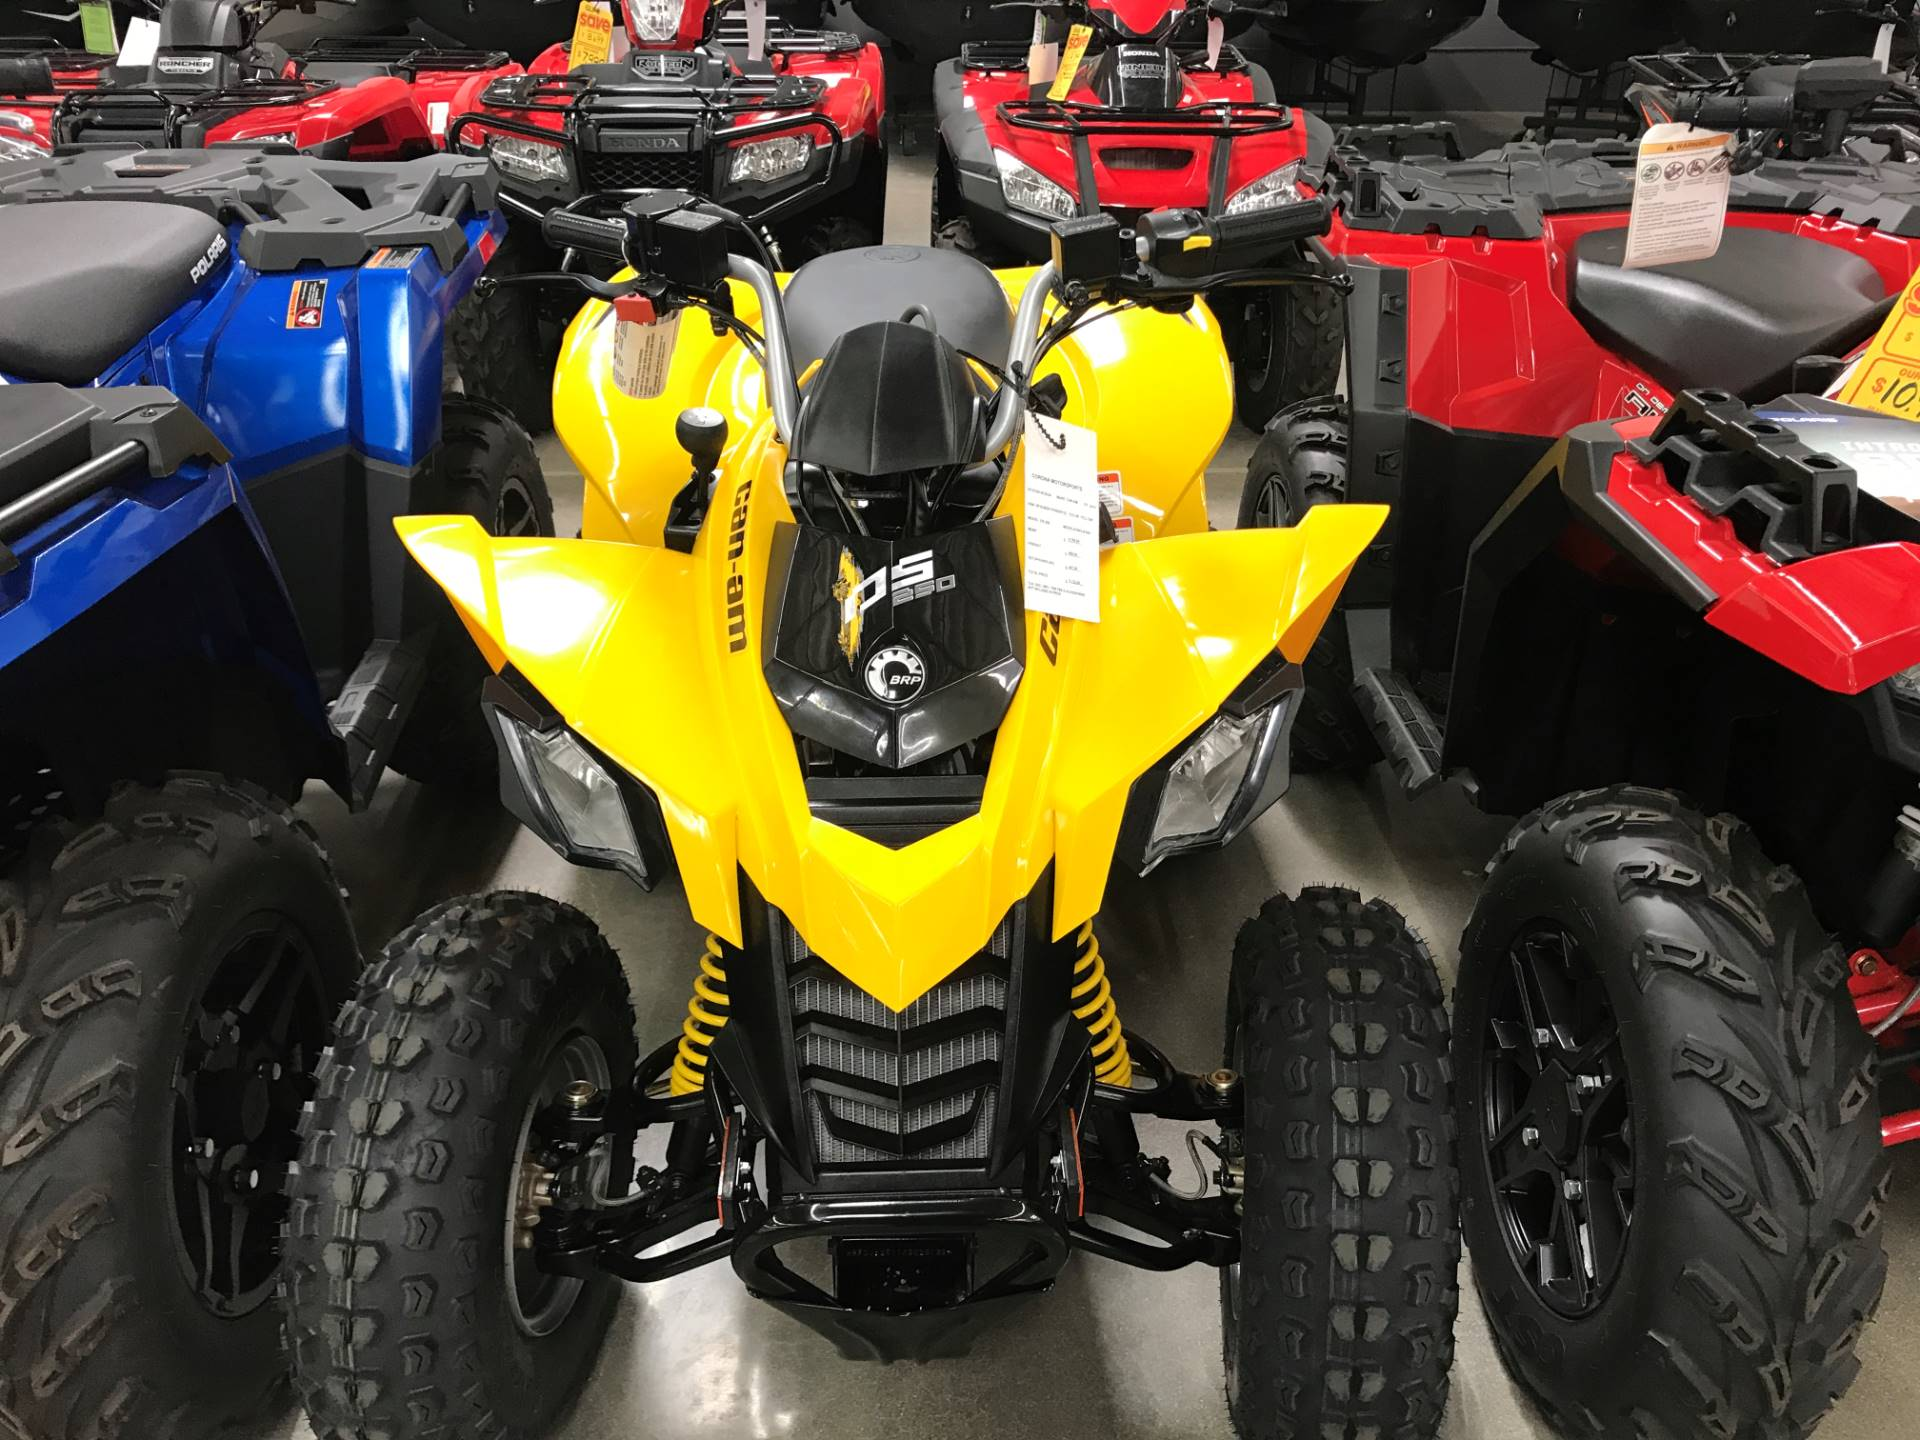 2019 Can-Am DS 250 in Corona, California - Photo 1